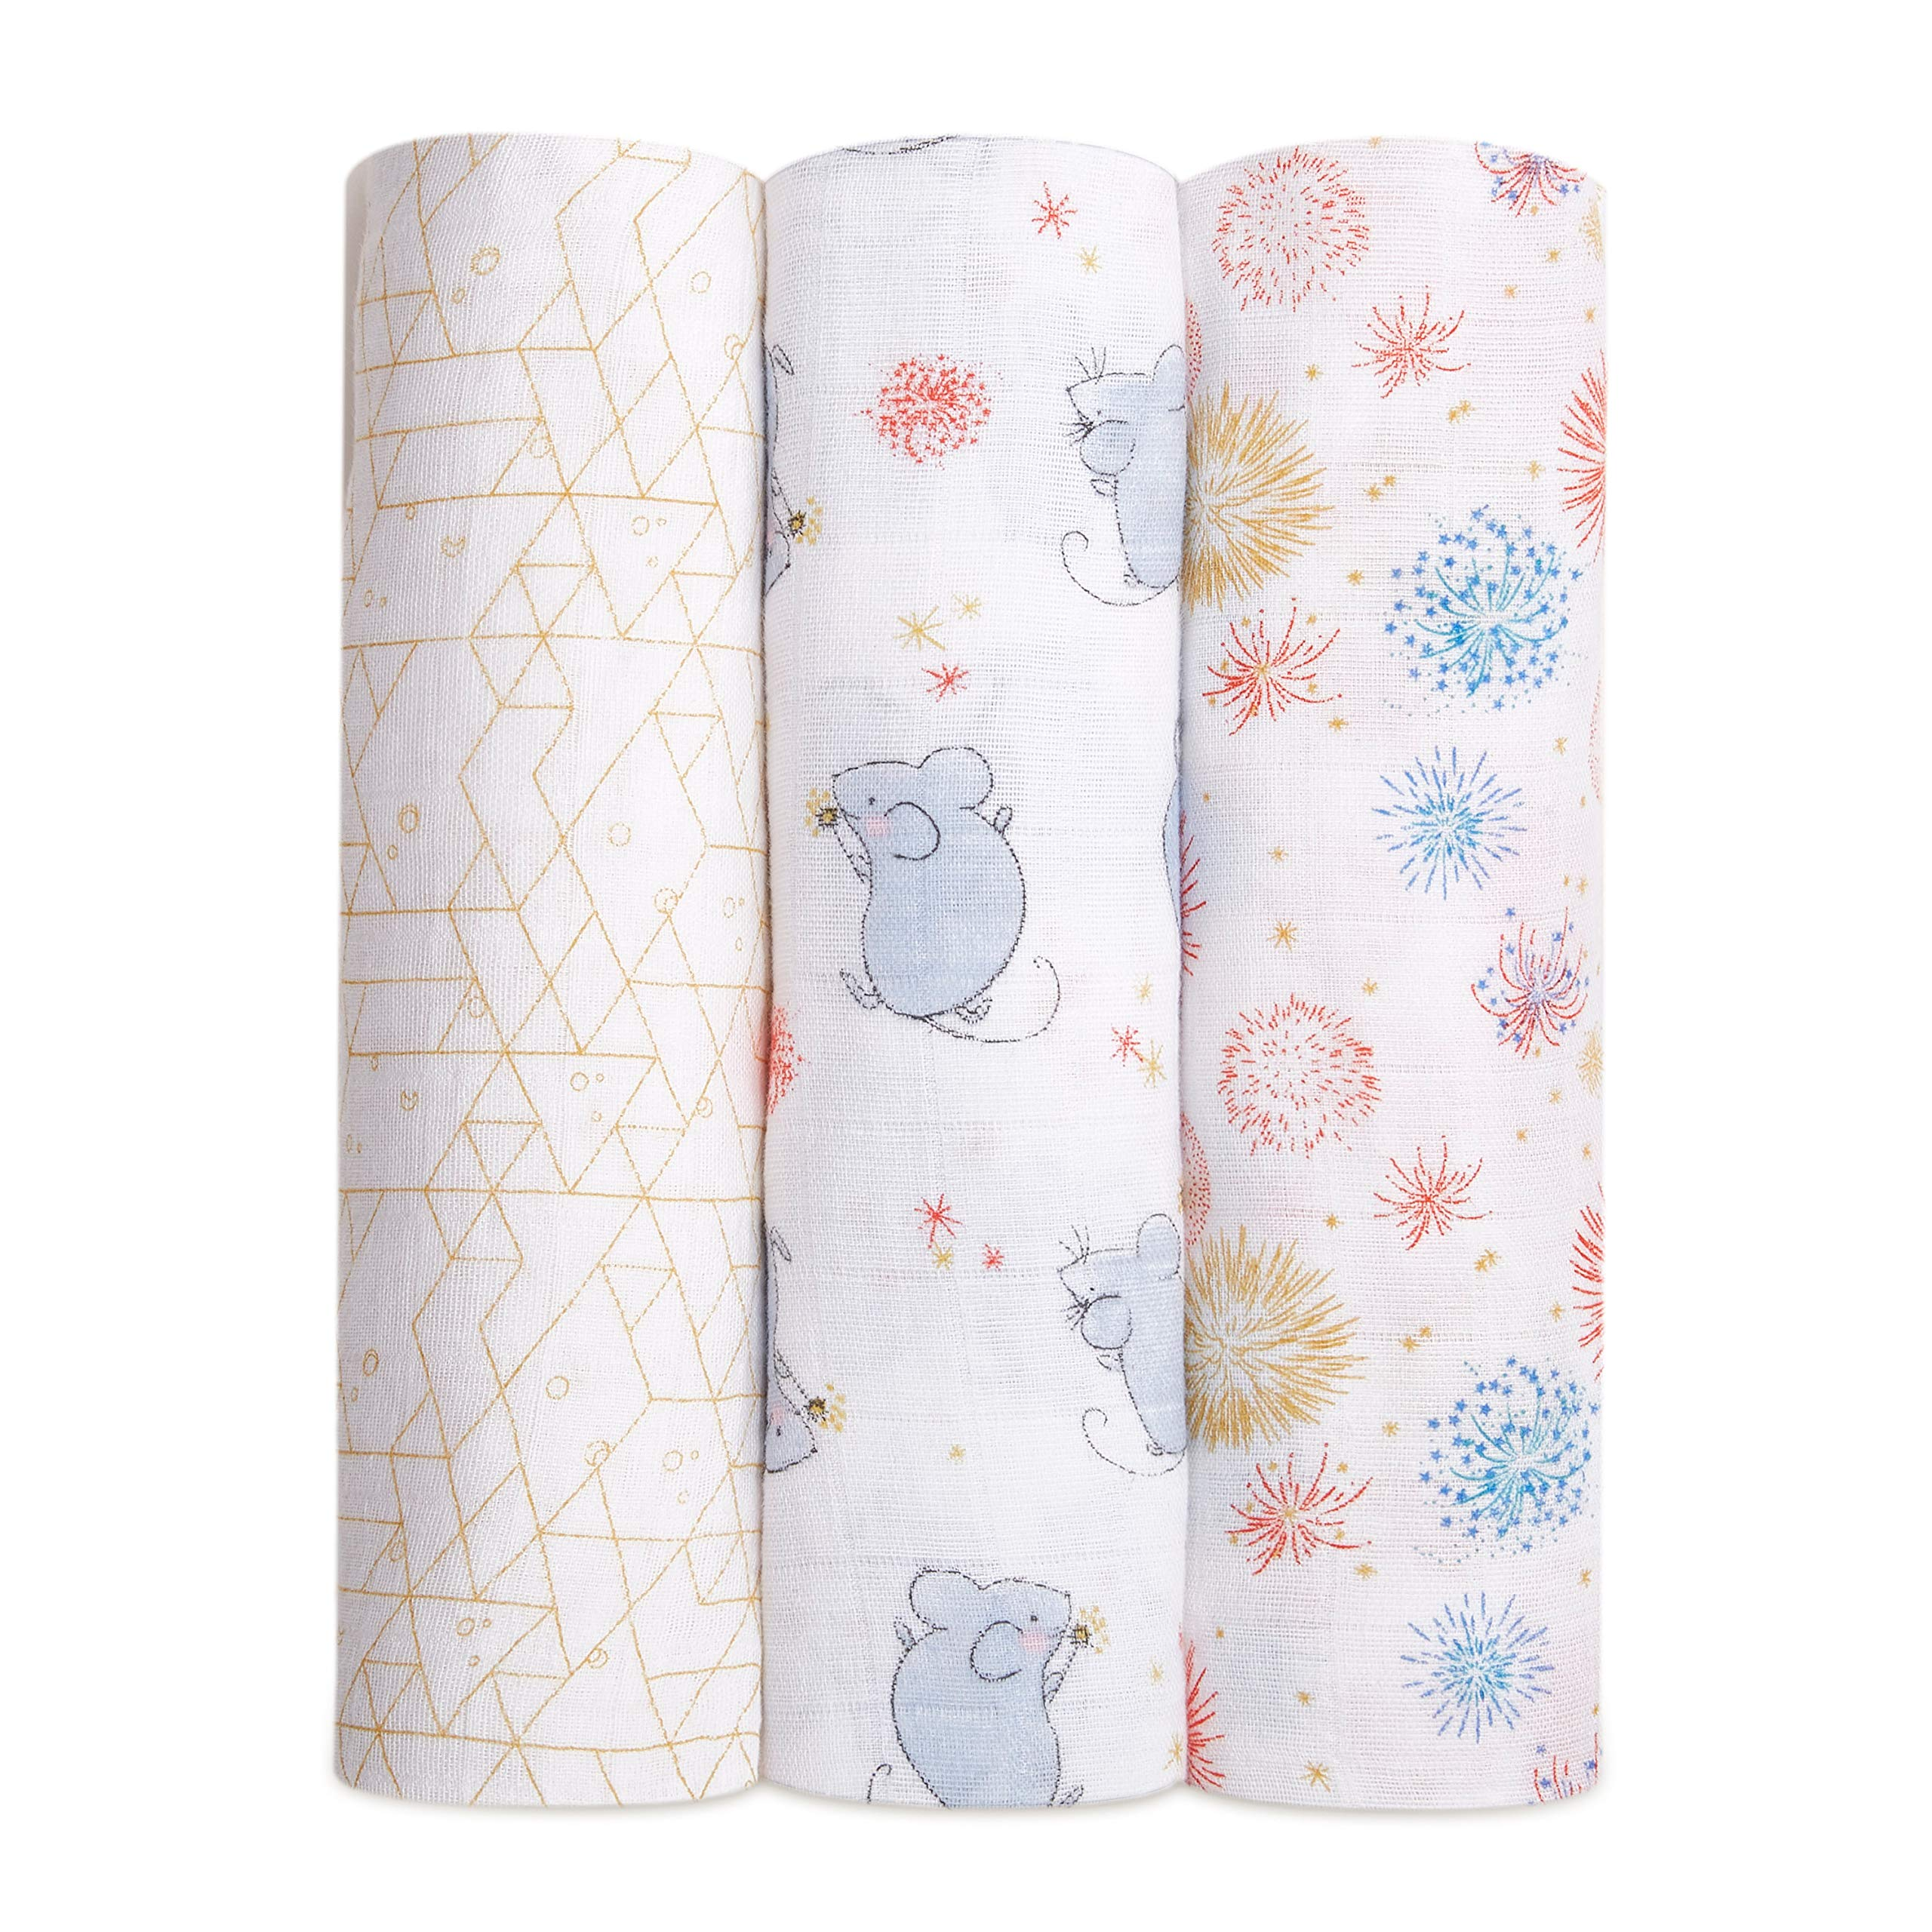 aden + anais Swaddle Blanket, Boutique Muslin Blankets for Girls & Boys, Baby Receiving Swaddles, Ideal Newborn & Infant Swaddling Set, 3 Pack, Year of The Mouse